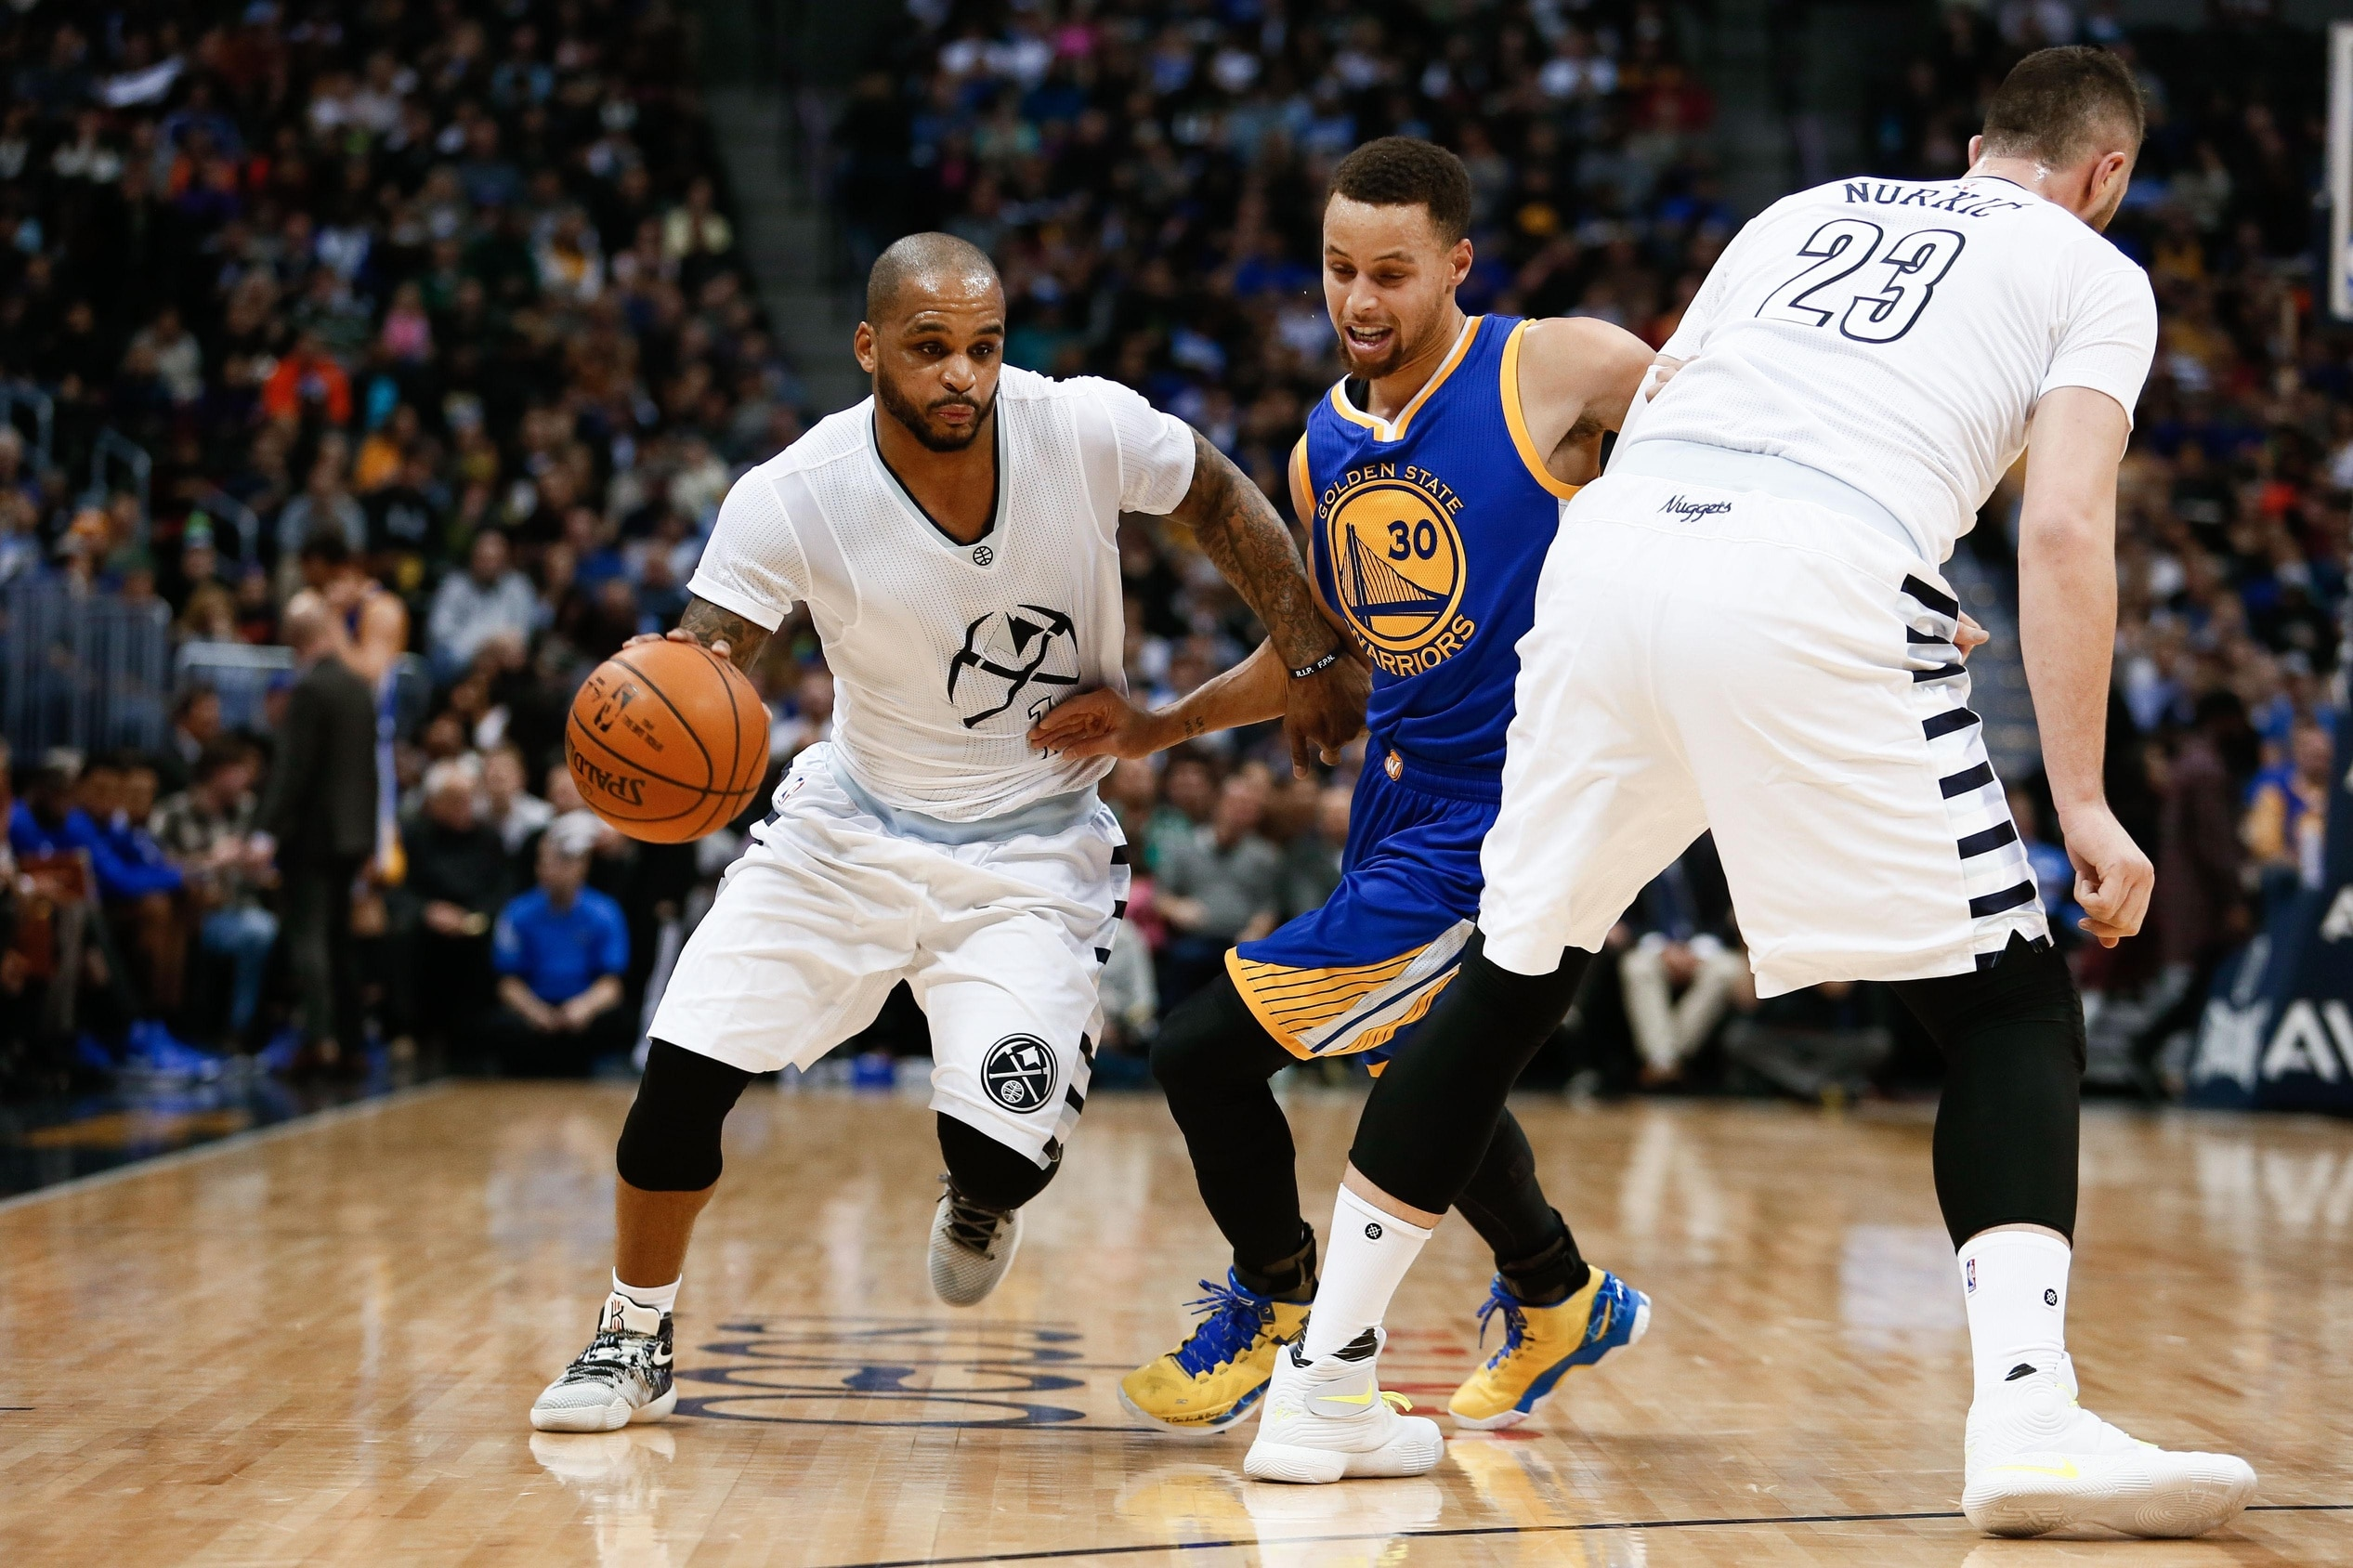 Jan 13, 2016; Denver, CO, USA; Golden State Warriors guard Stephen Curry (30) defends against Denver Nuggets guard Jameer Nelson (1) and center Jusuf Nurkic (23) in the first quarter at the Pepsi Center. Mandatory Credit: Isaiah J. Downing-USA TODAY Sports